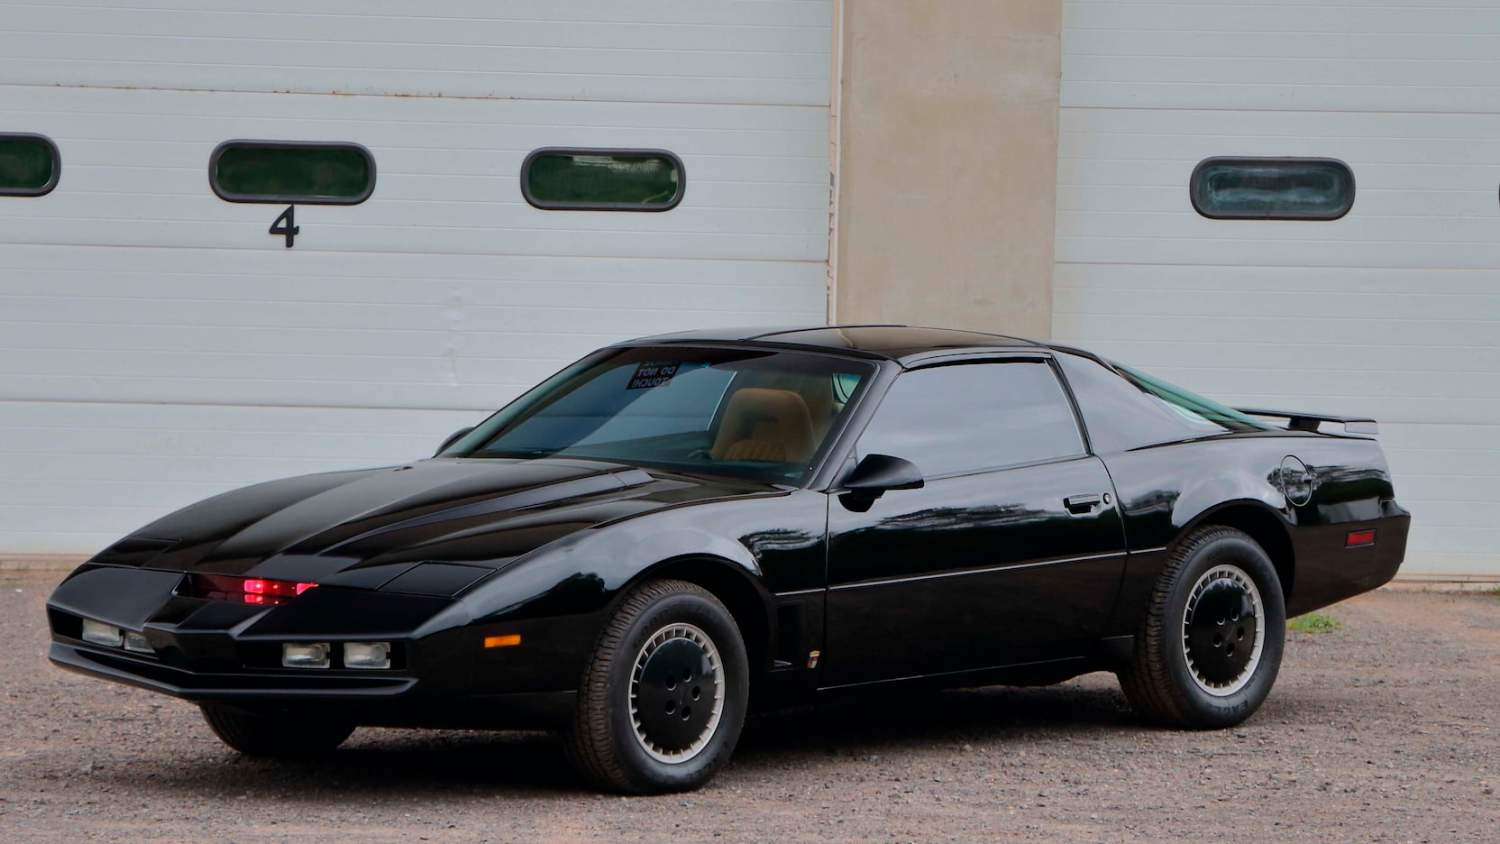 1982 Pontiac Trans Am KITT replica